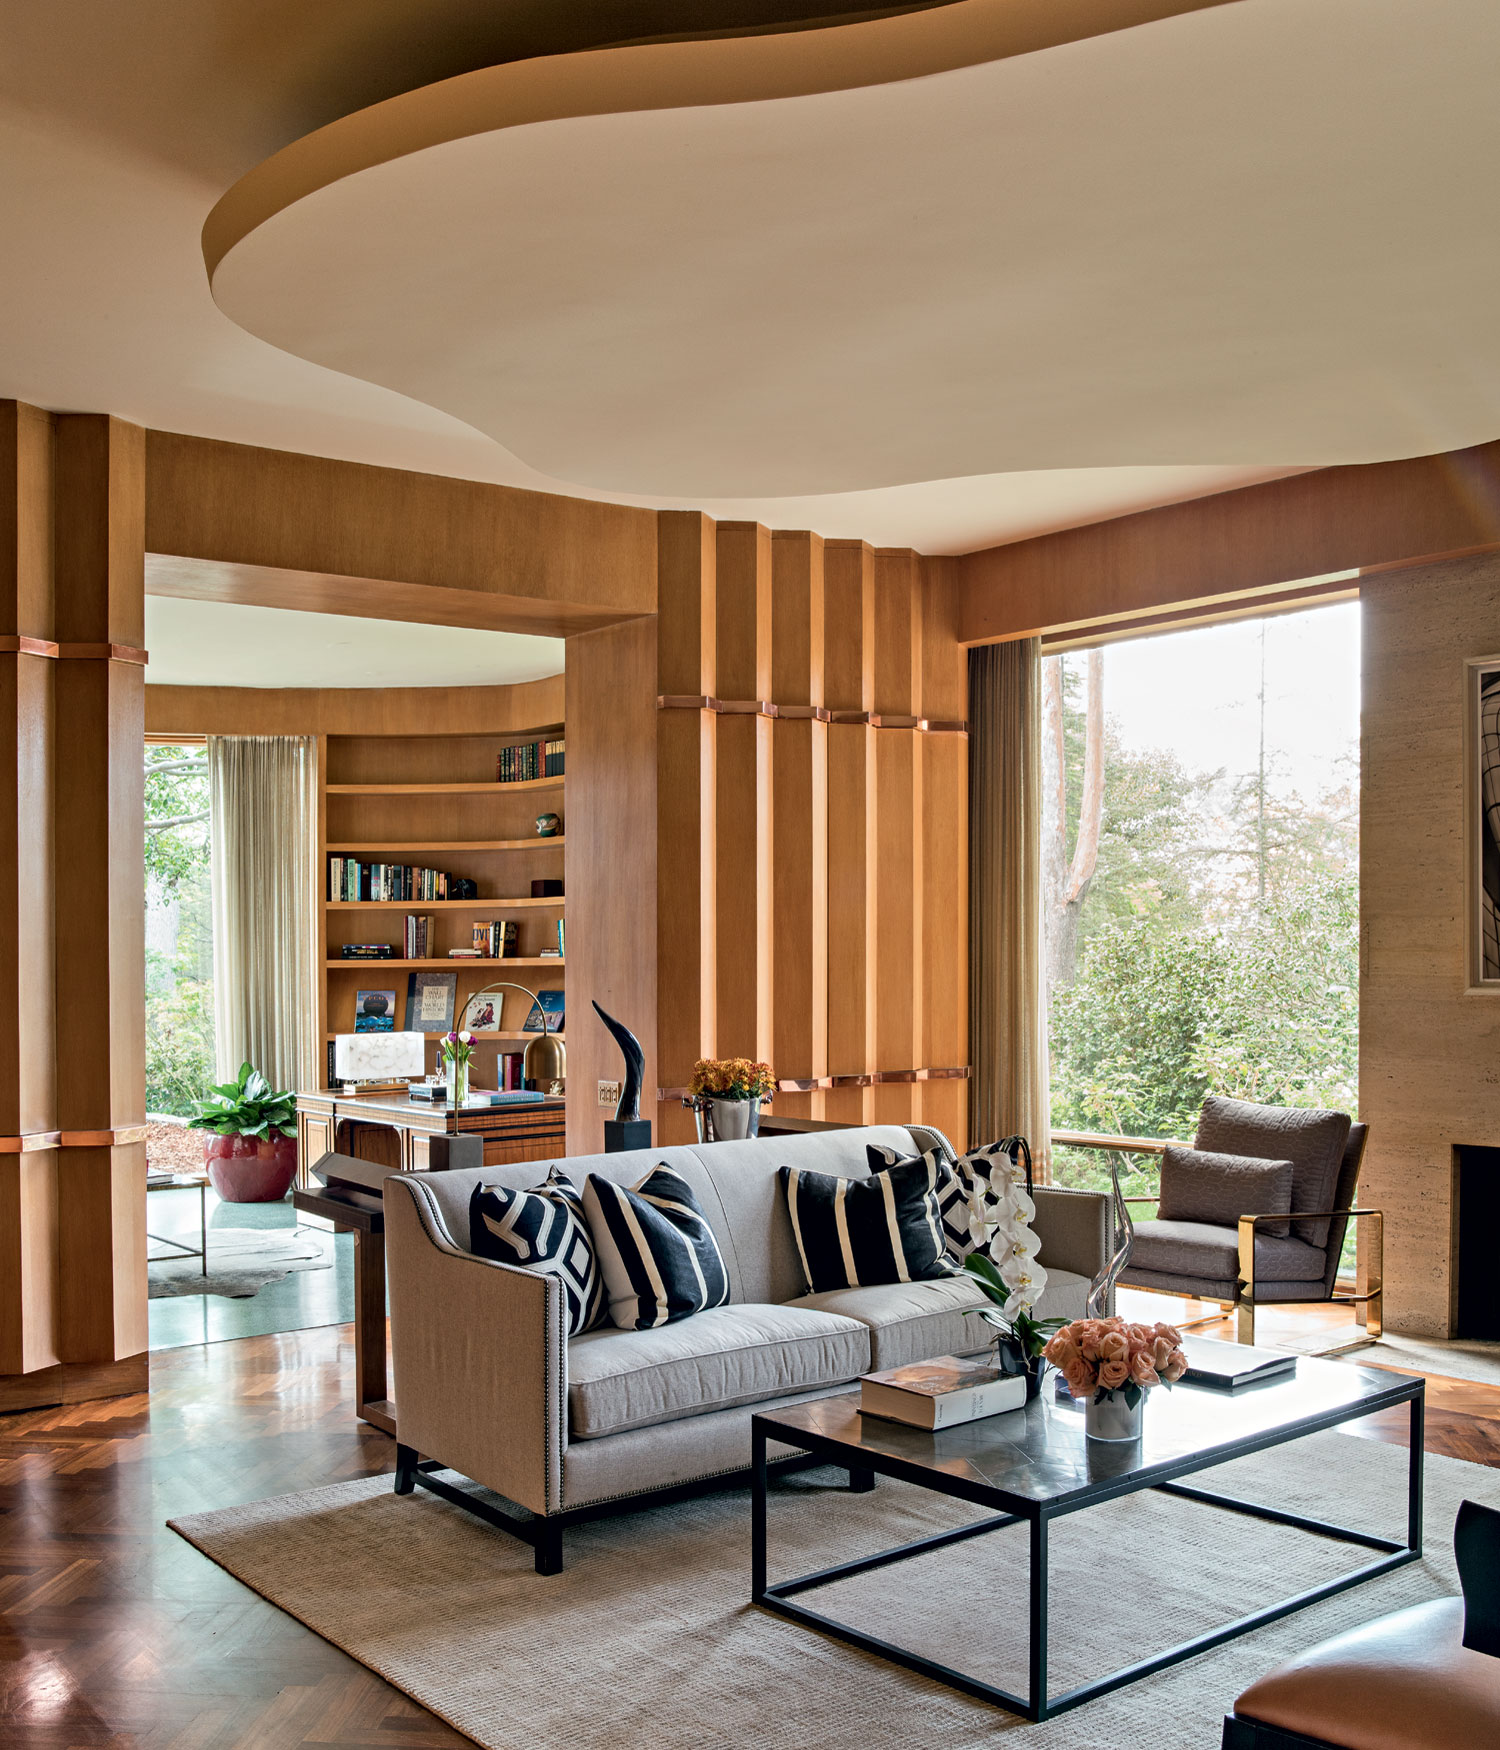 The paneled Art Deco library-cum-den was, and remains, the focal point of this residence, which has been immaculately restored to its former glory.